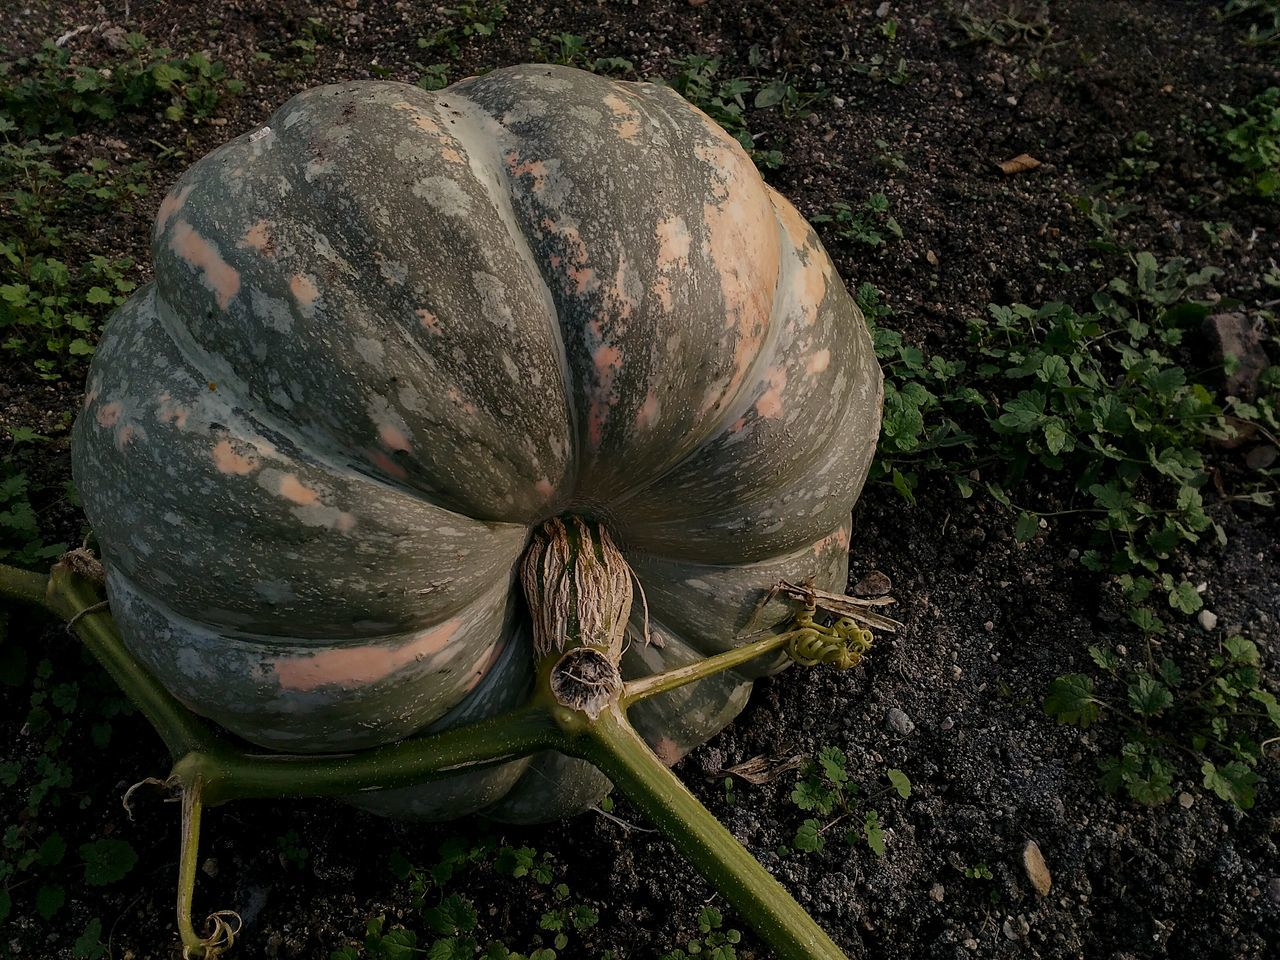 Close-up Field Pumpkin Pumpkin Season Pumpkinpicking Pumpkin Plant Pumpkin Leaves Showcase October Autumn 2016 Plant Growth Countryside Outdoors Nature No People Beauty In Nature From My Garden